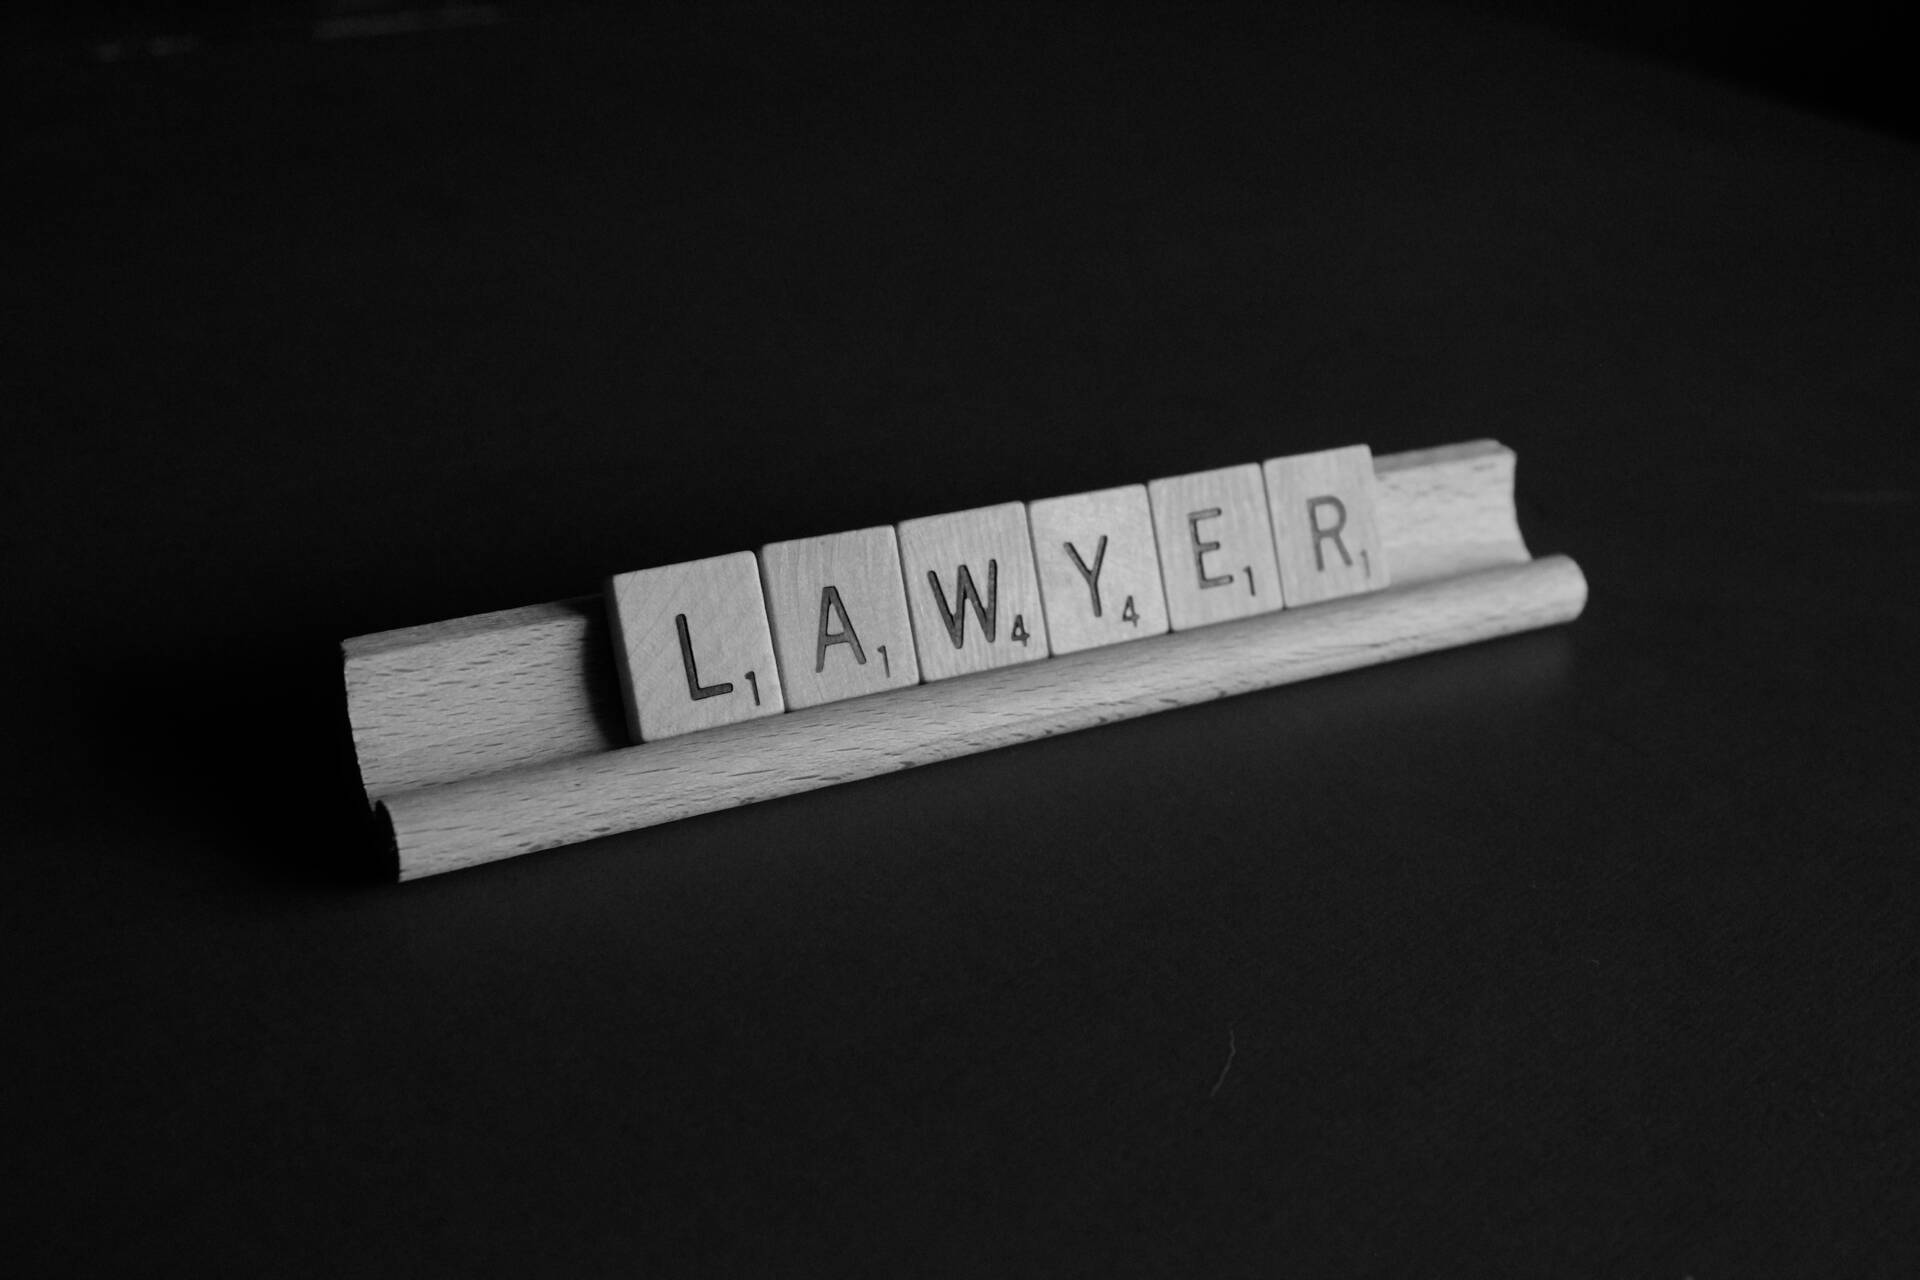 What to look for in a criminal defence lawyer?